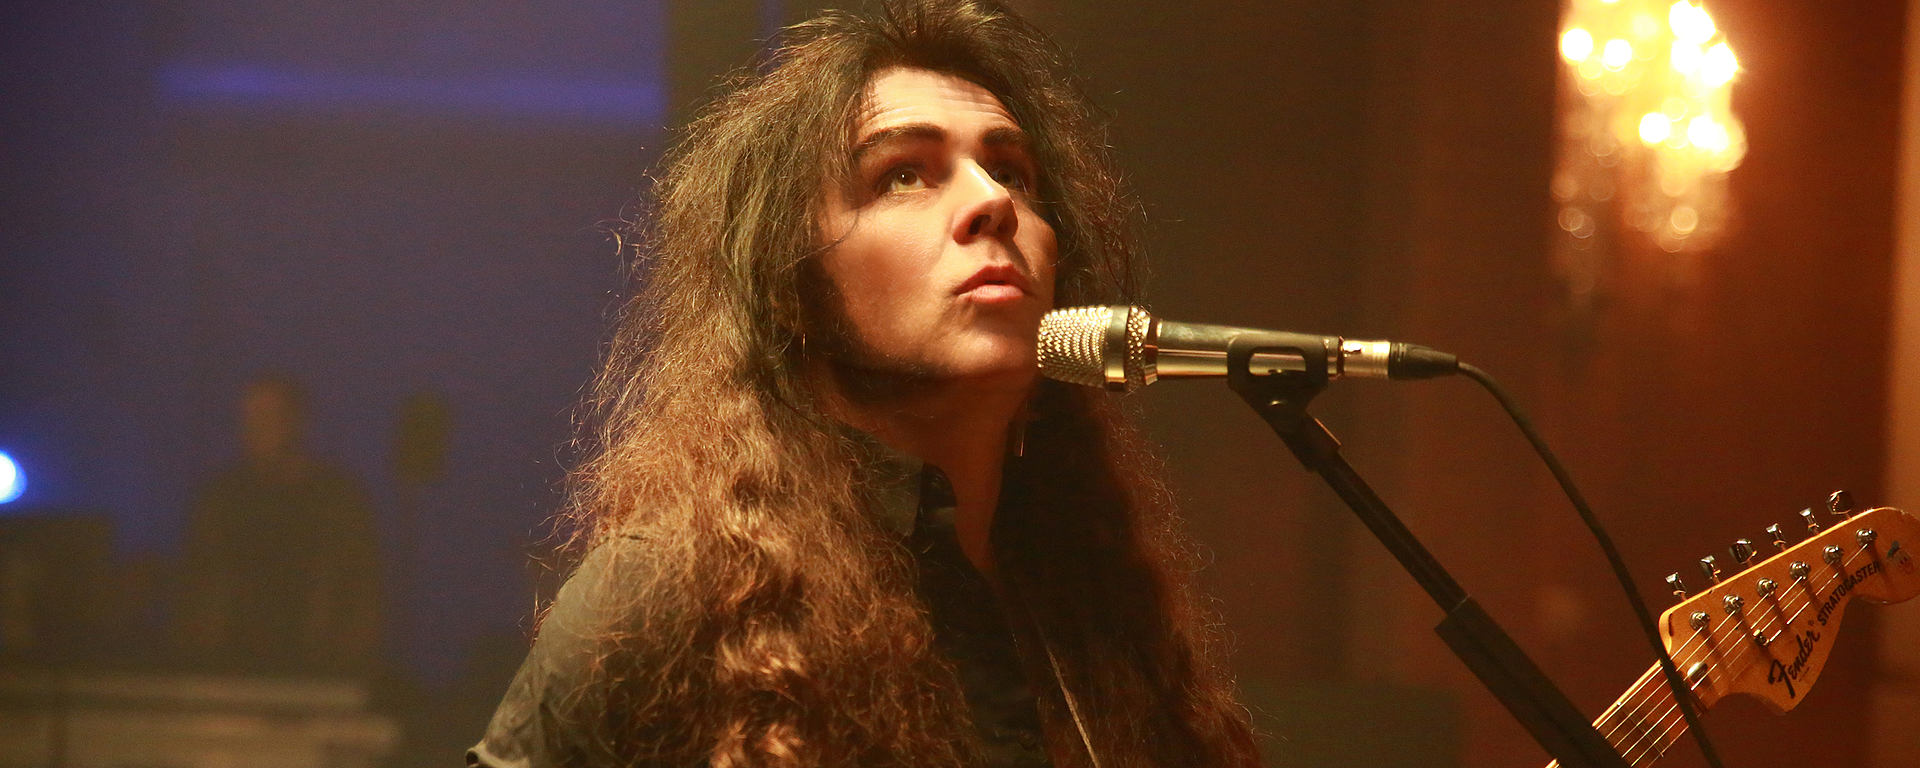 Yngwie Malmsteen uses the MTP 550 DM handheld performance microphone